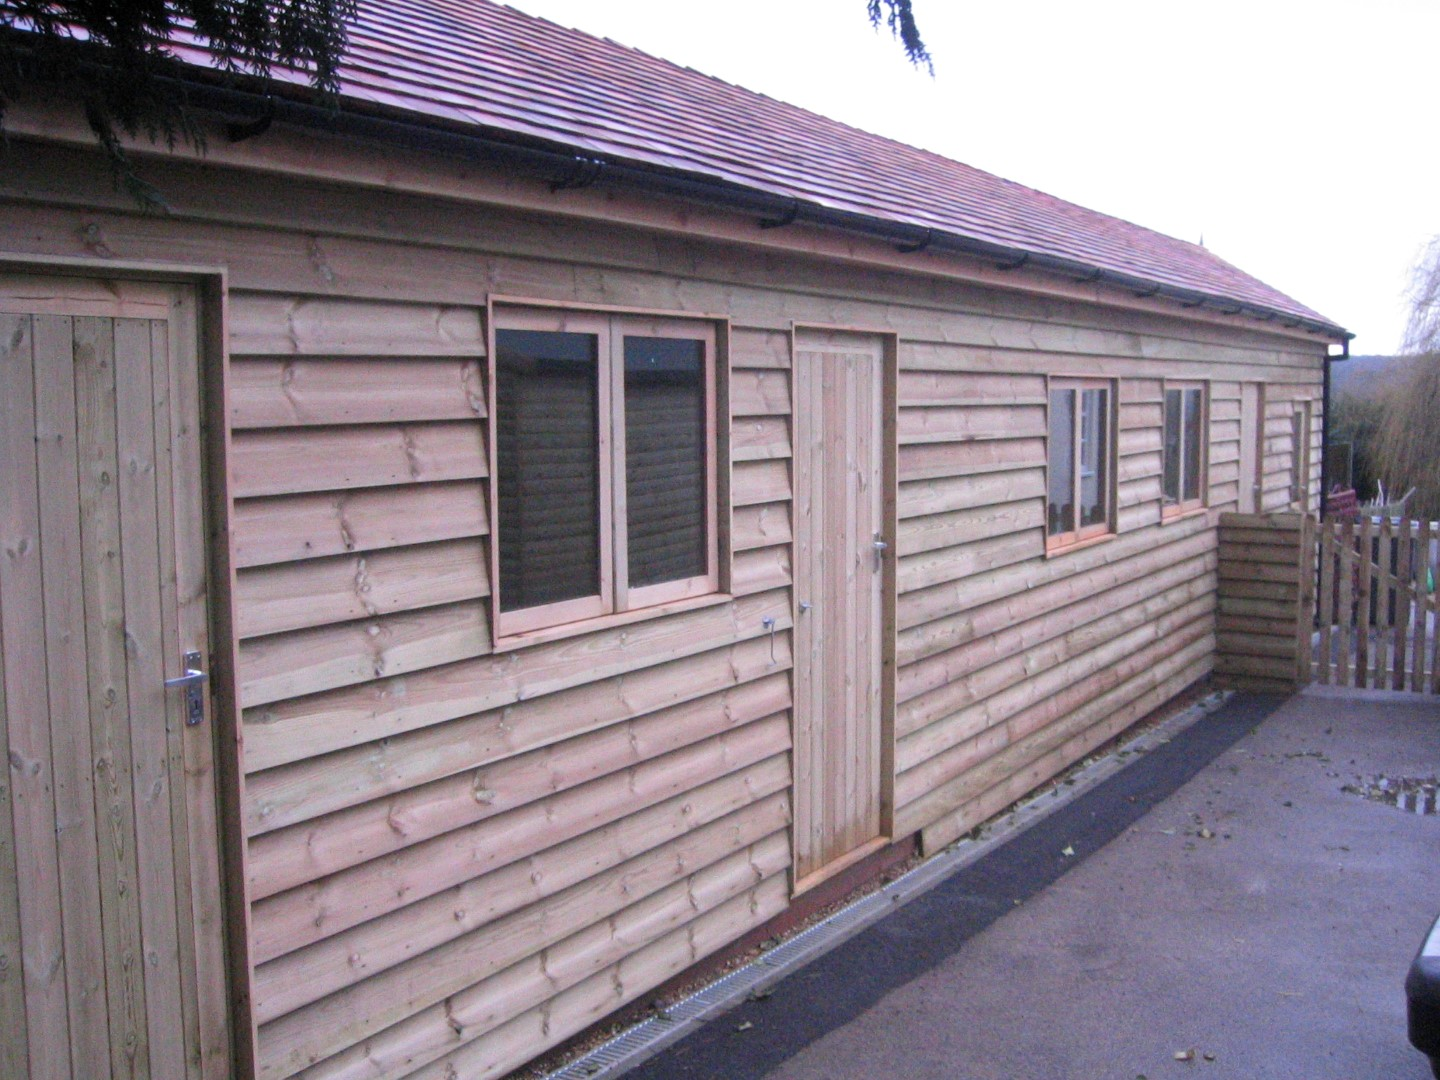 Heavy duty feather edge external cladding, Quinneys joinery double glazed windows, cedar wood shingles to the roof